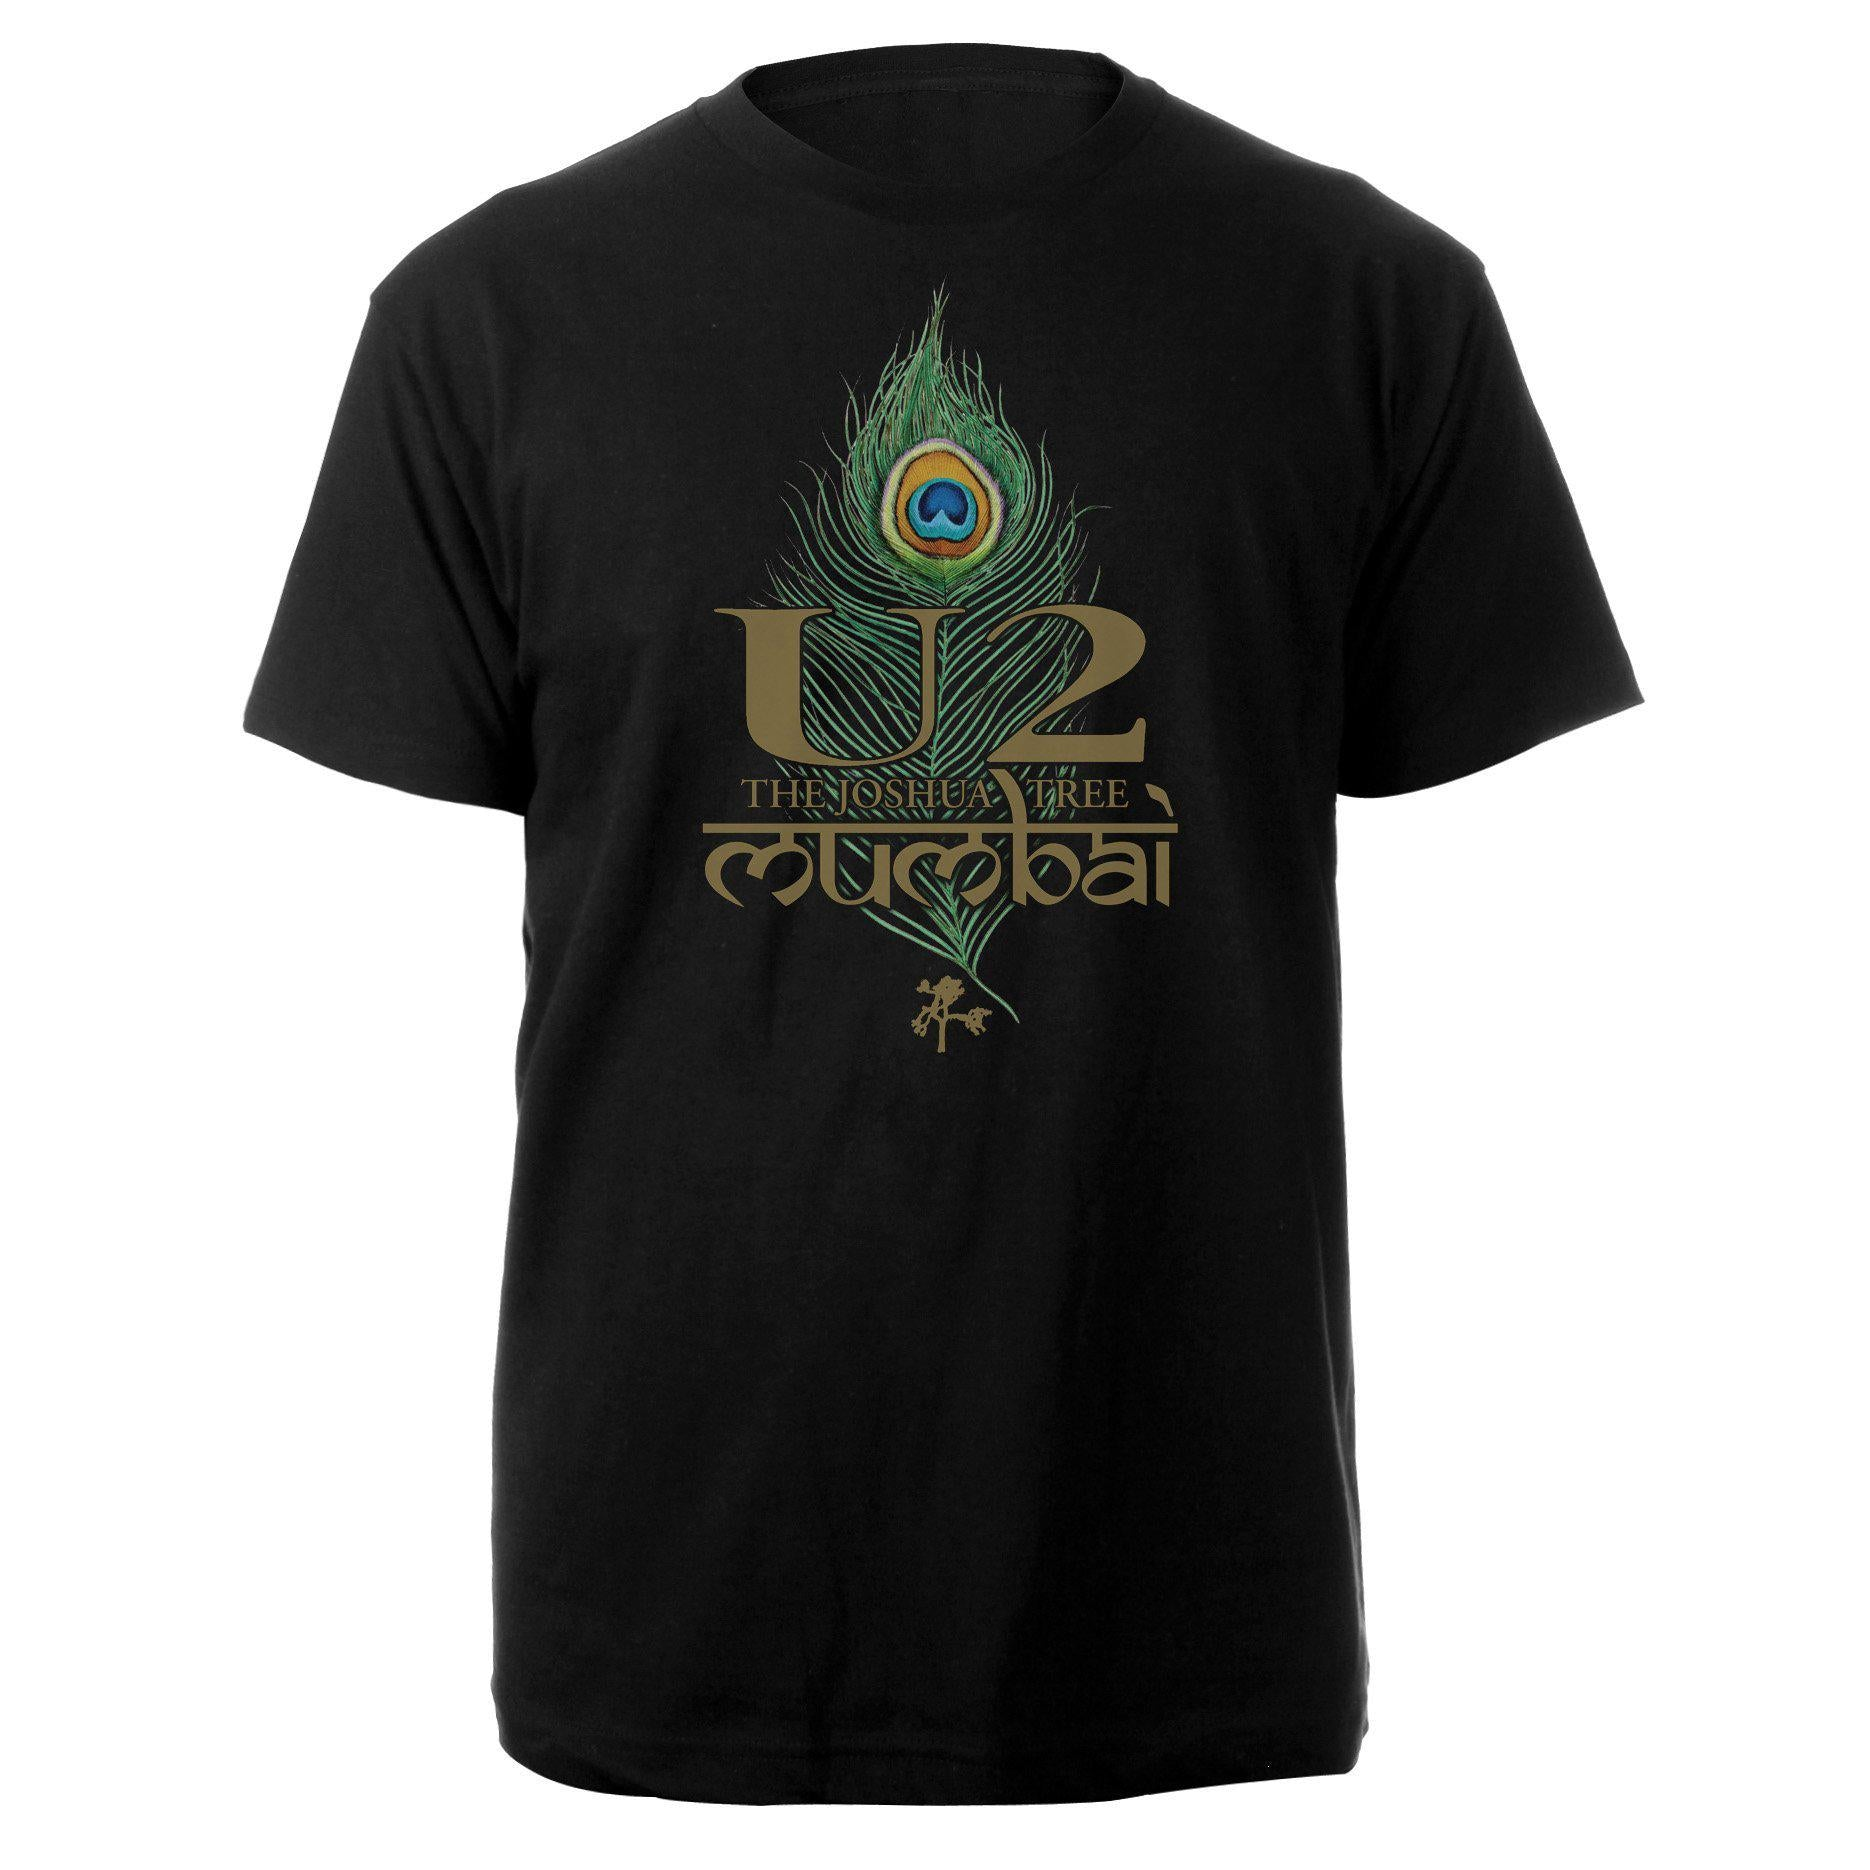 The Joshua Tree Tour 2019 Mumbai Event T-Shirt